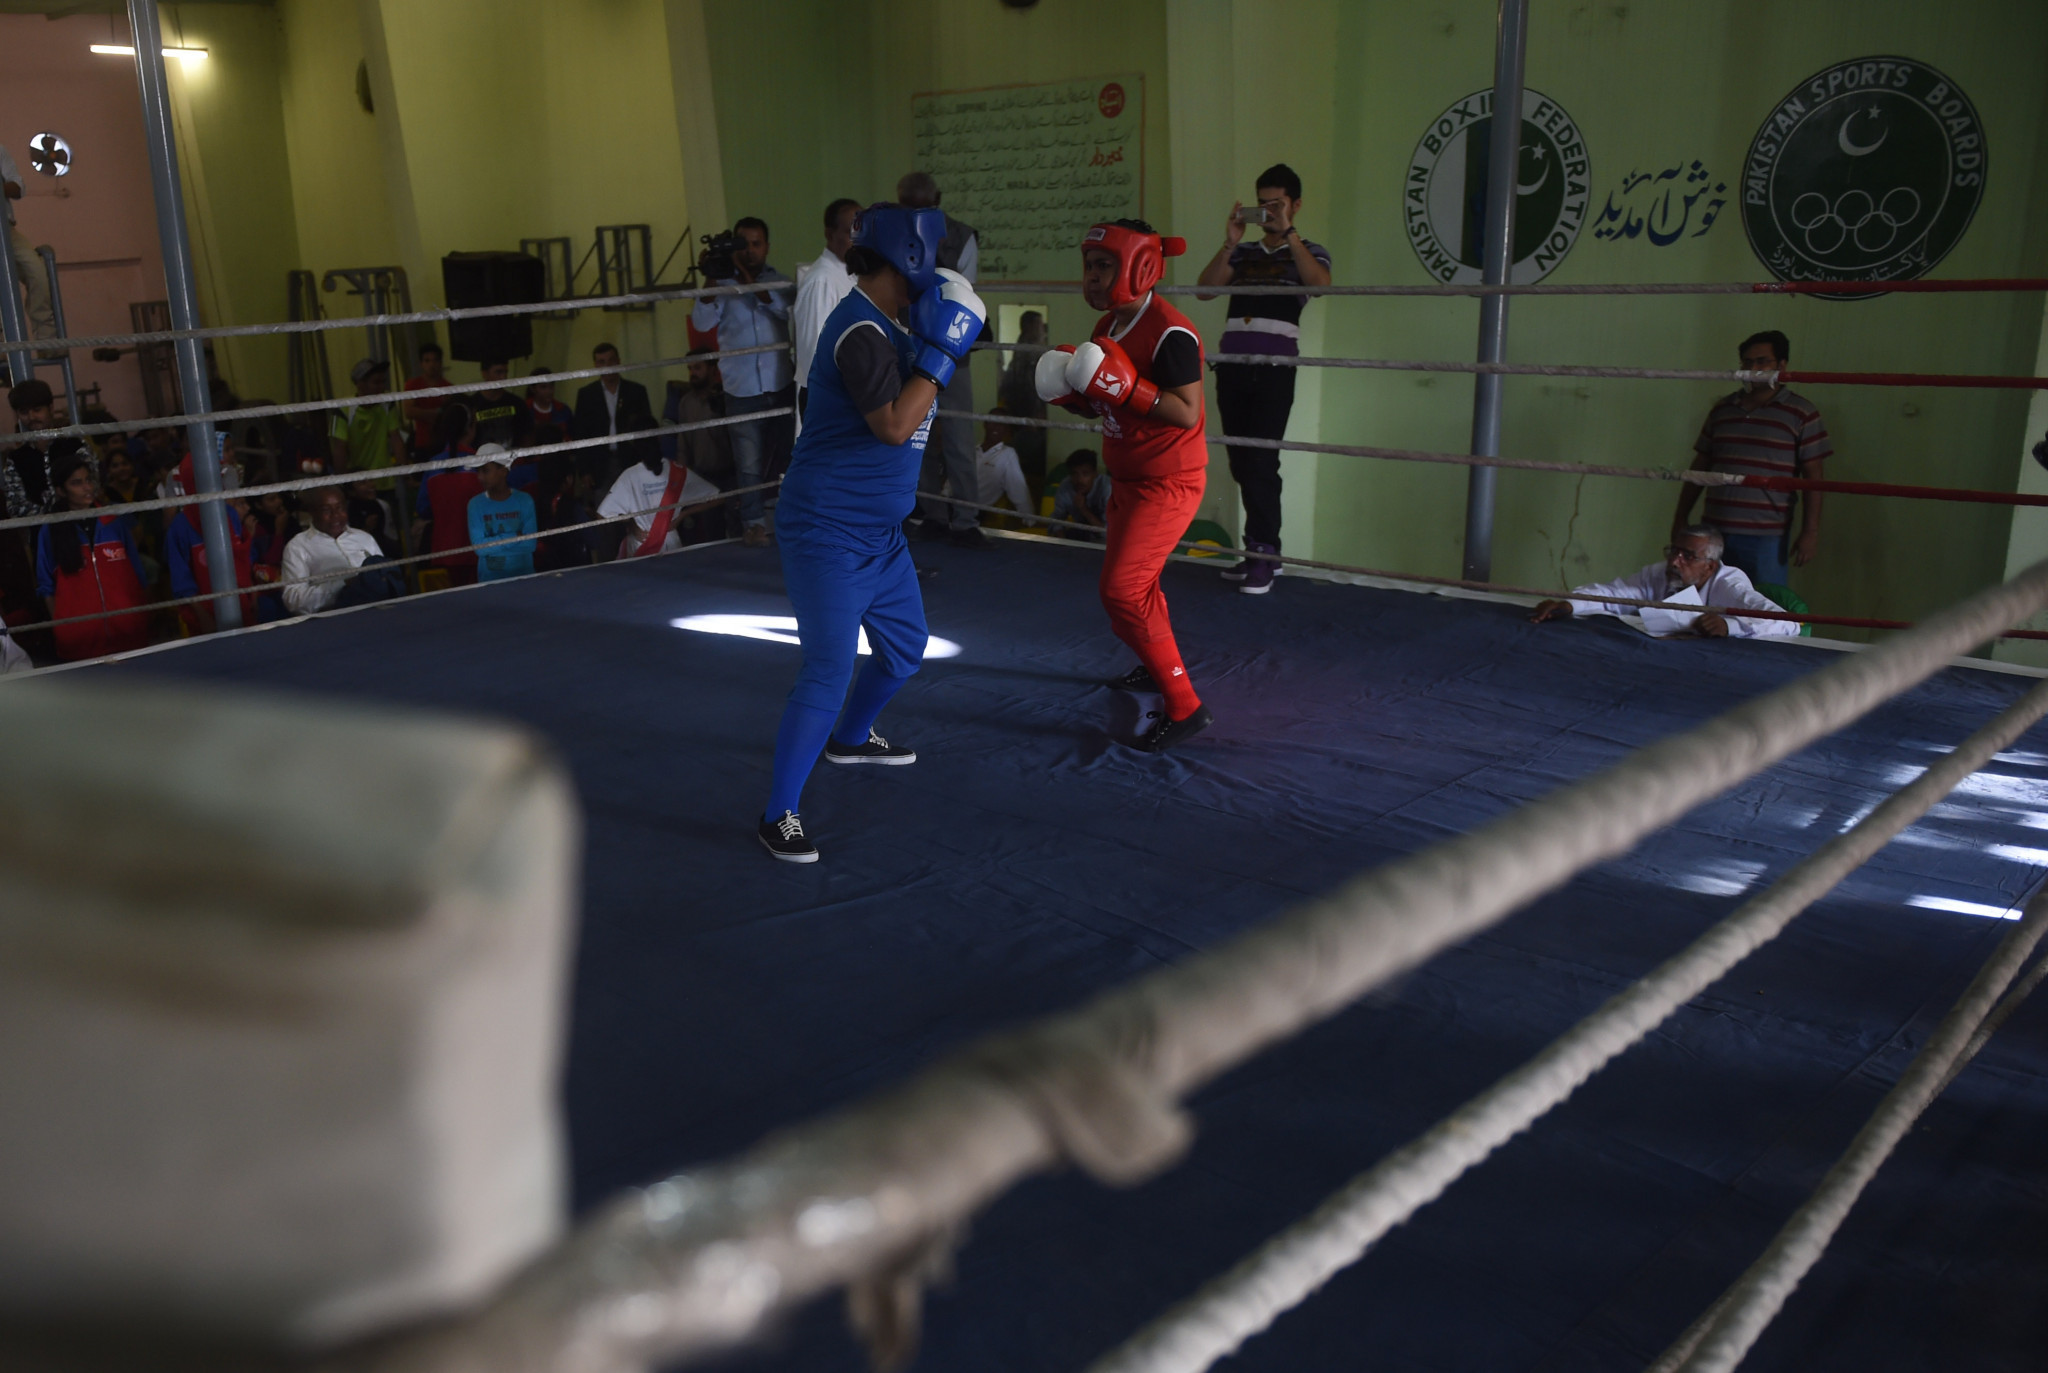 Pakistan has not fielded a boxer at the Olympic Games since Athens 2004 ©Getty Images